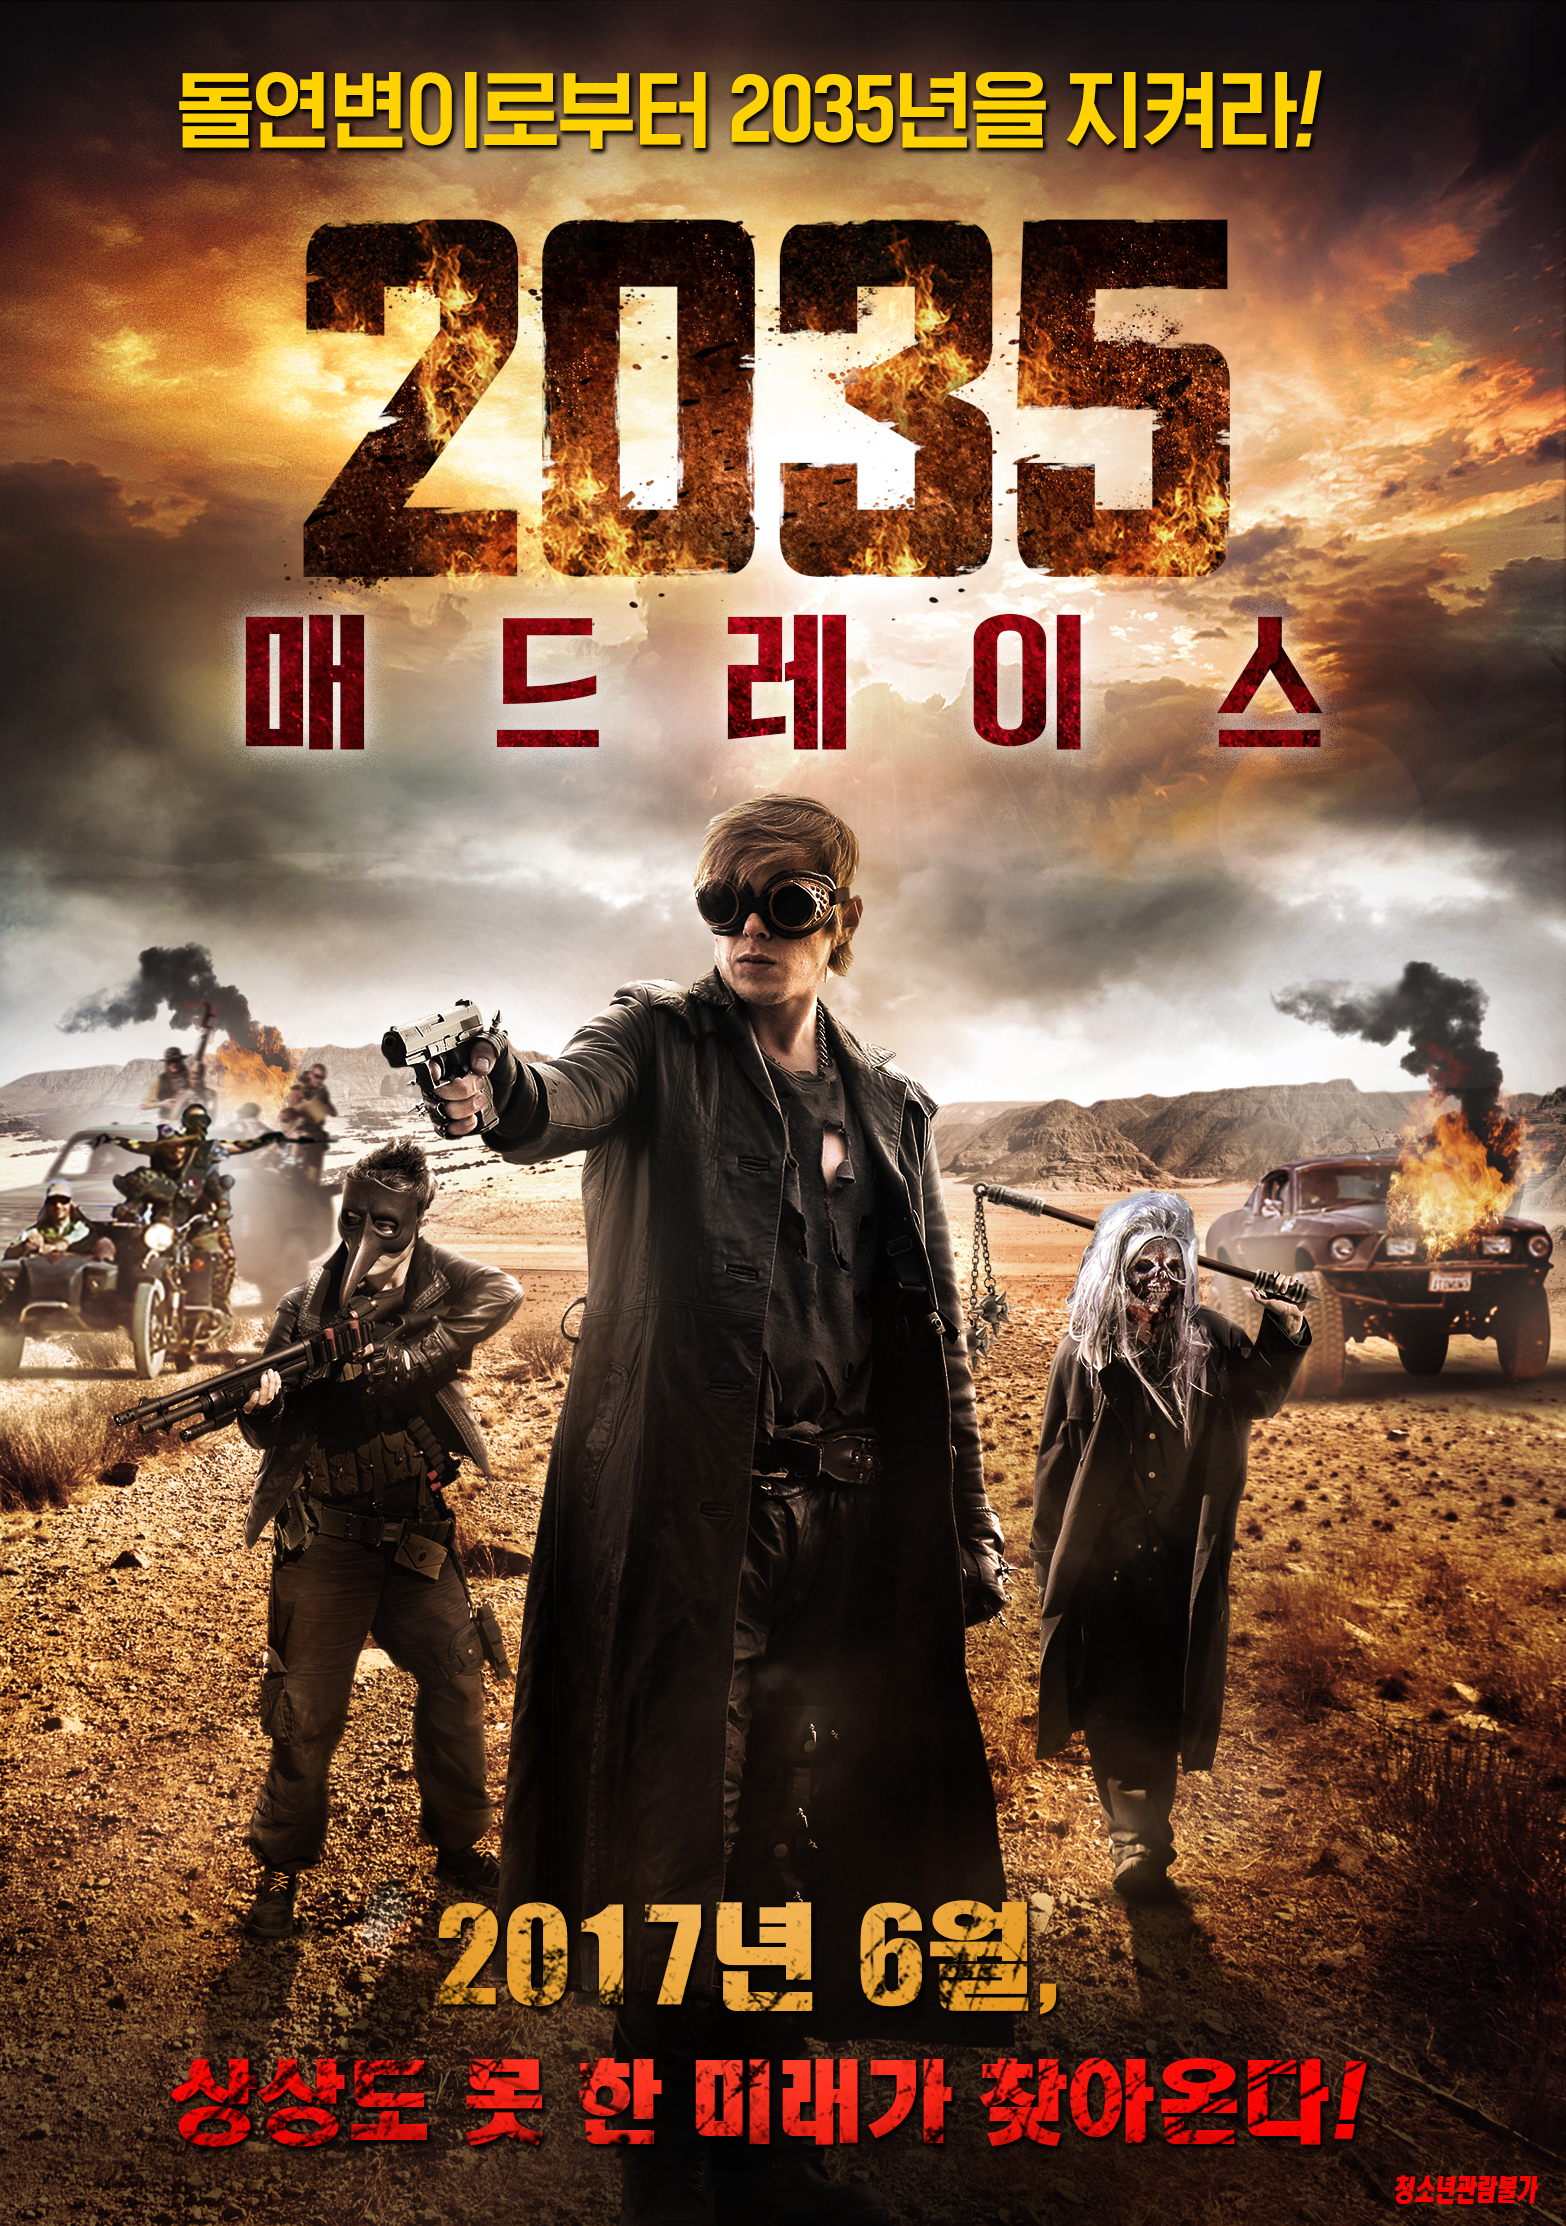 2035 매드 레이스 (The Forbidden Dimensions, 2017)